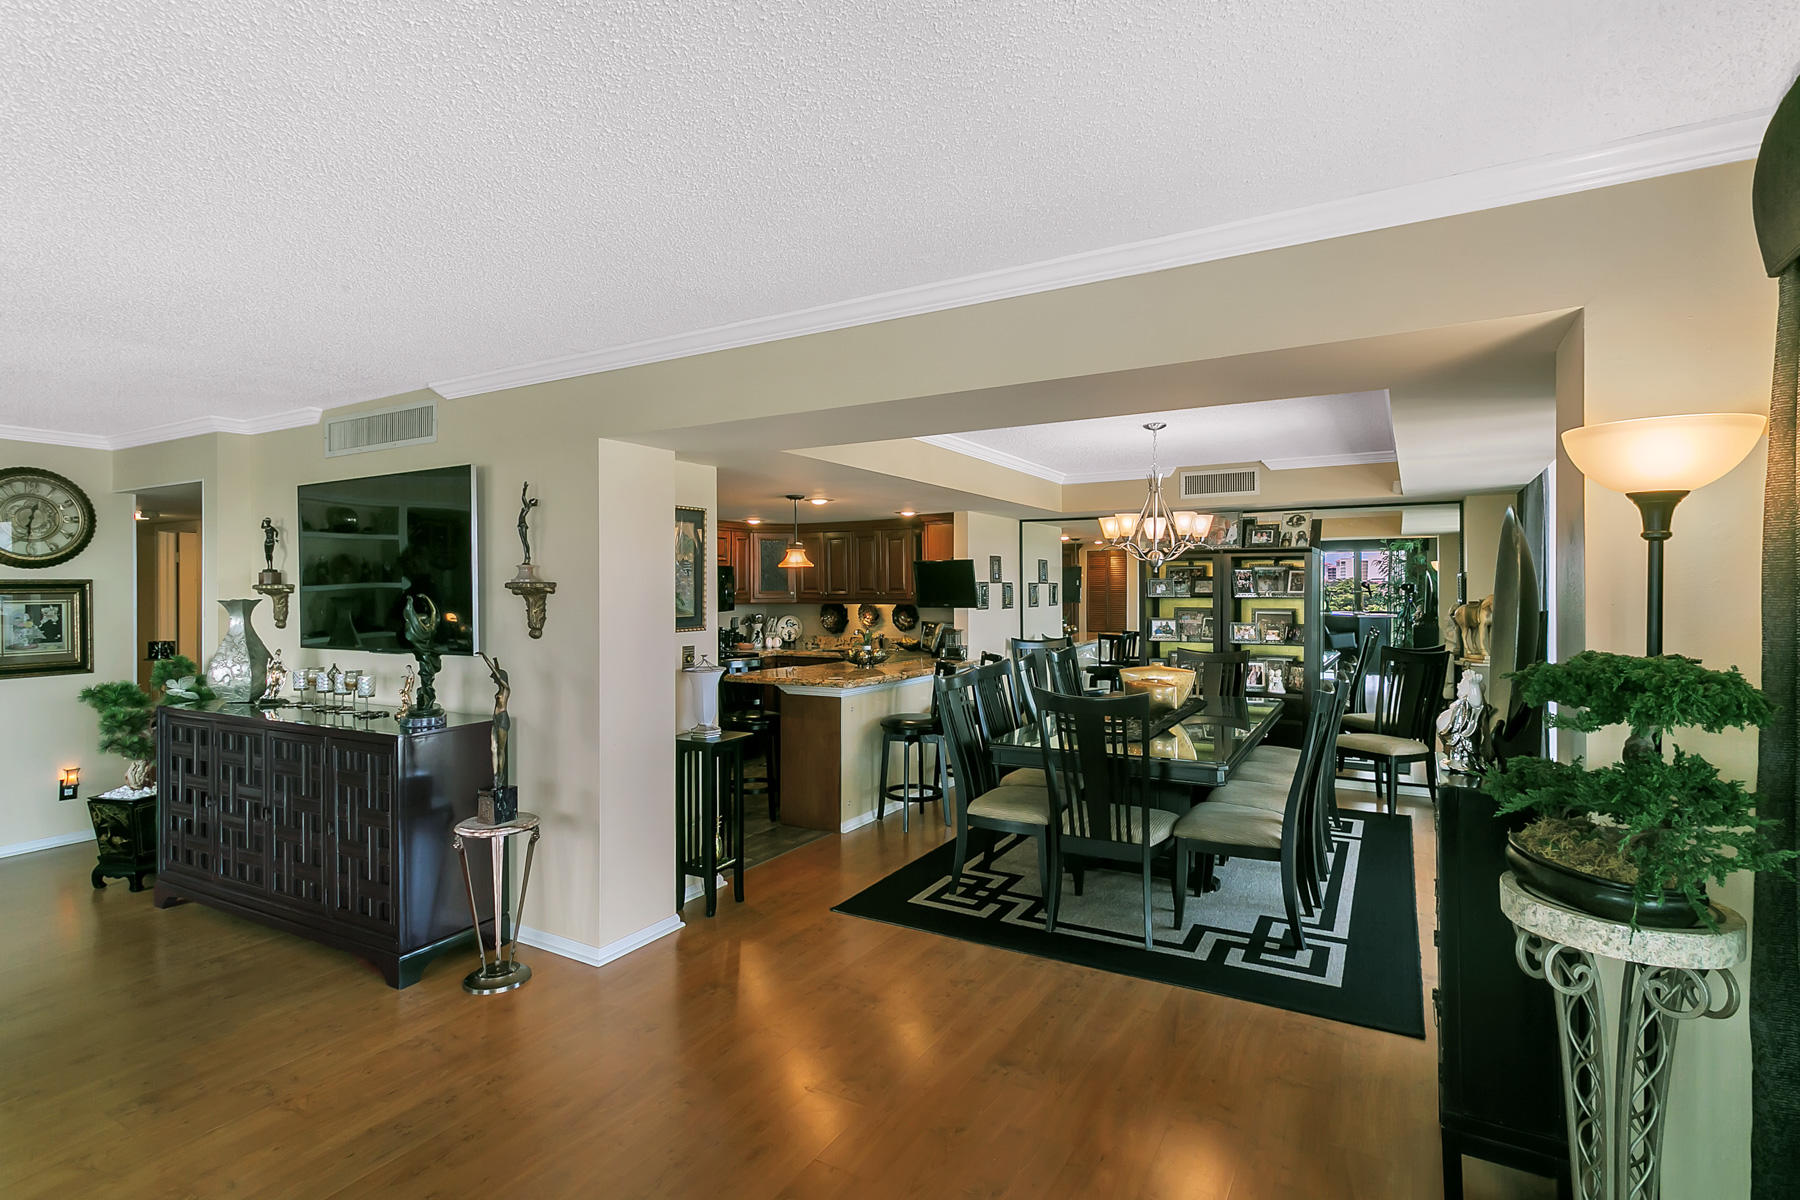 OLD PORT COVE HOMES FOR SALE